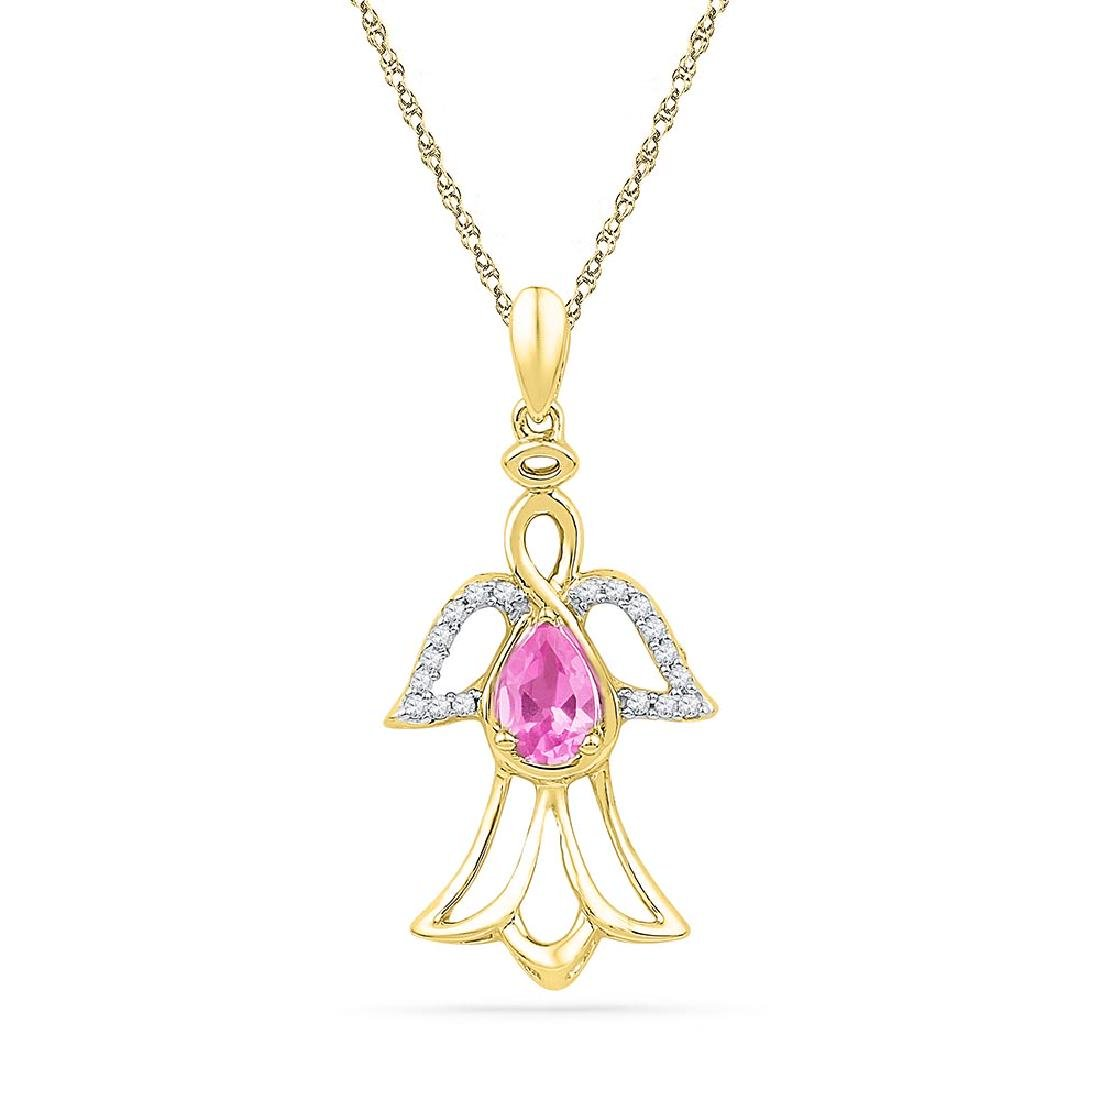 10kt Yellow Gold Womens Pear Lab-Created Pink Sapphire